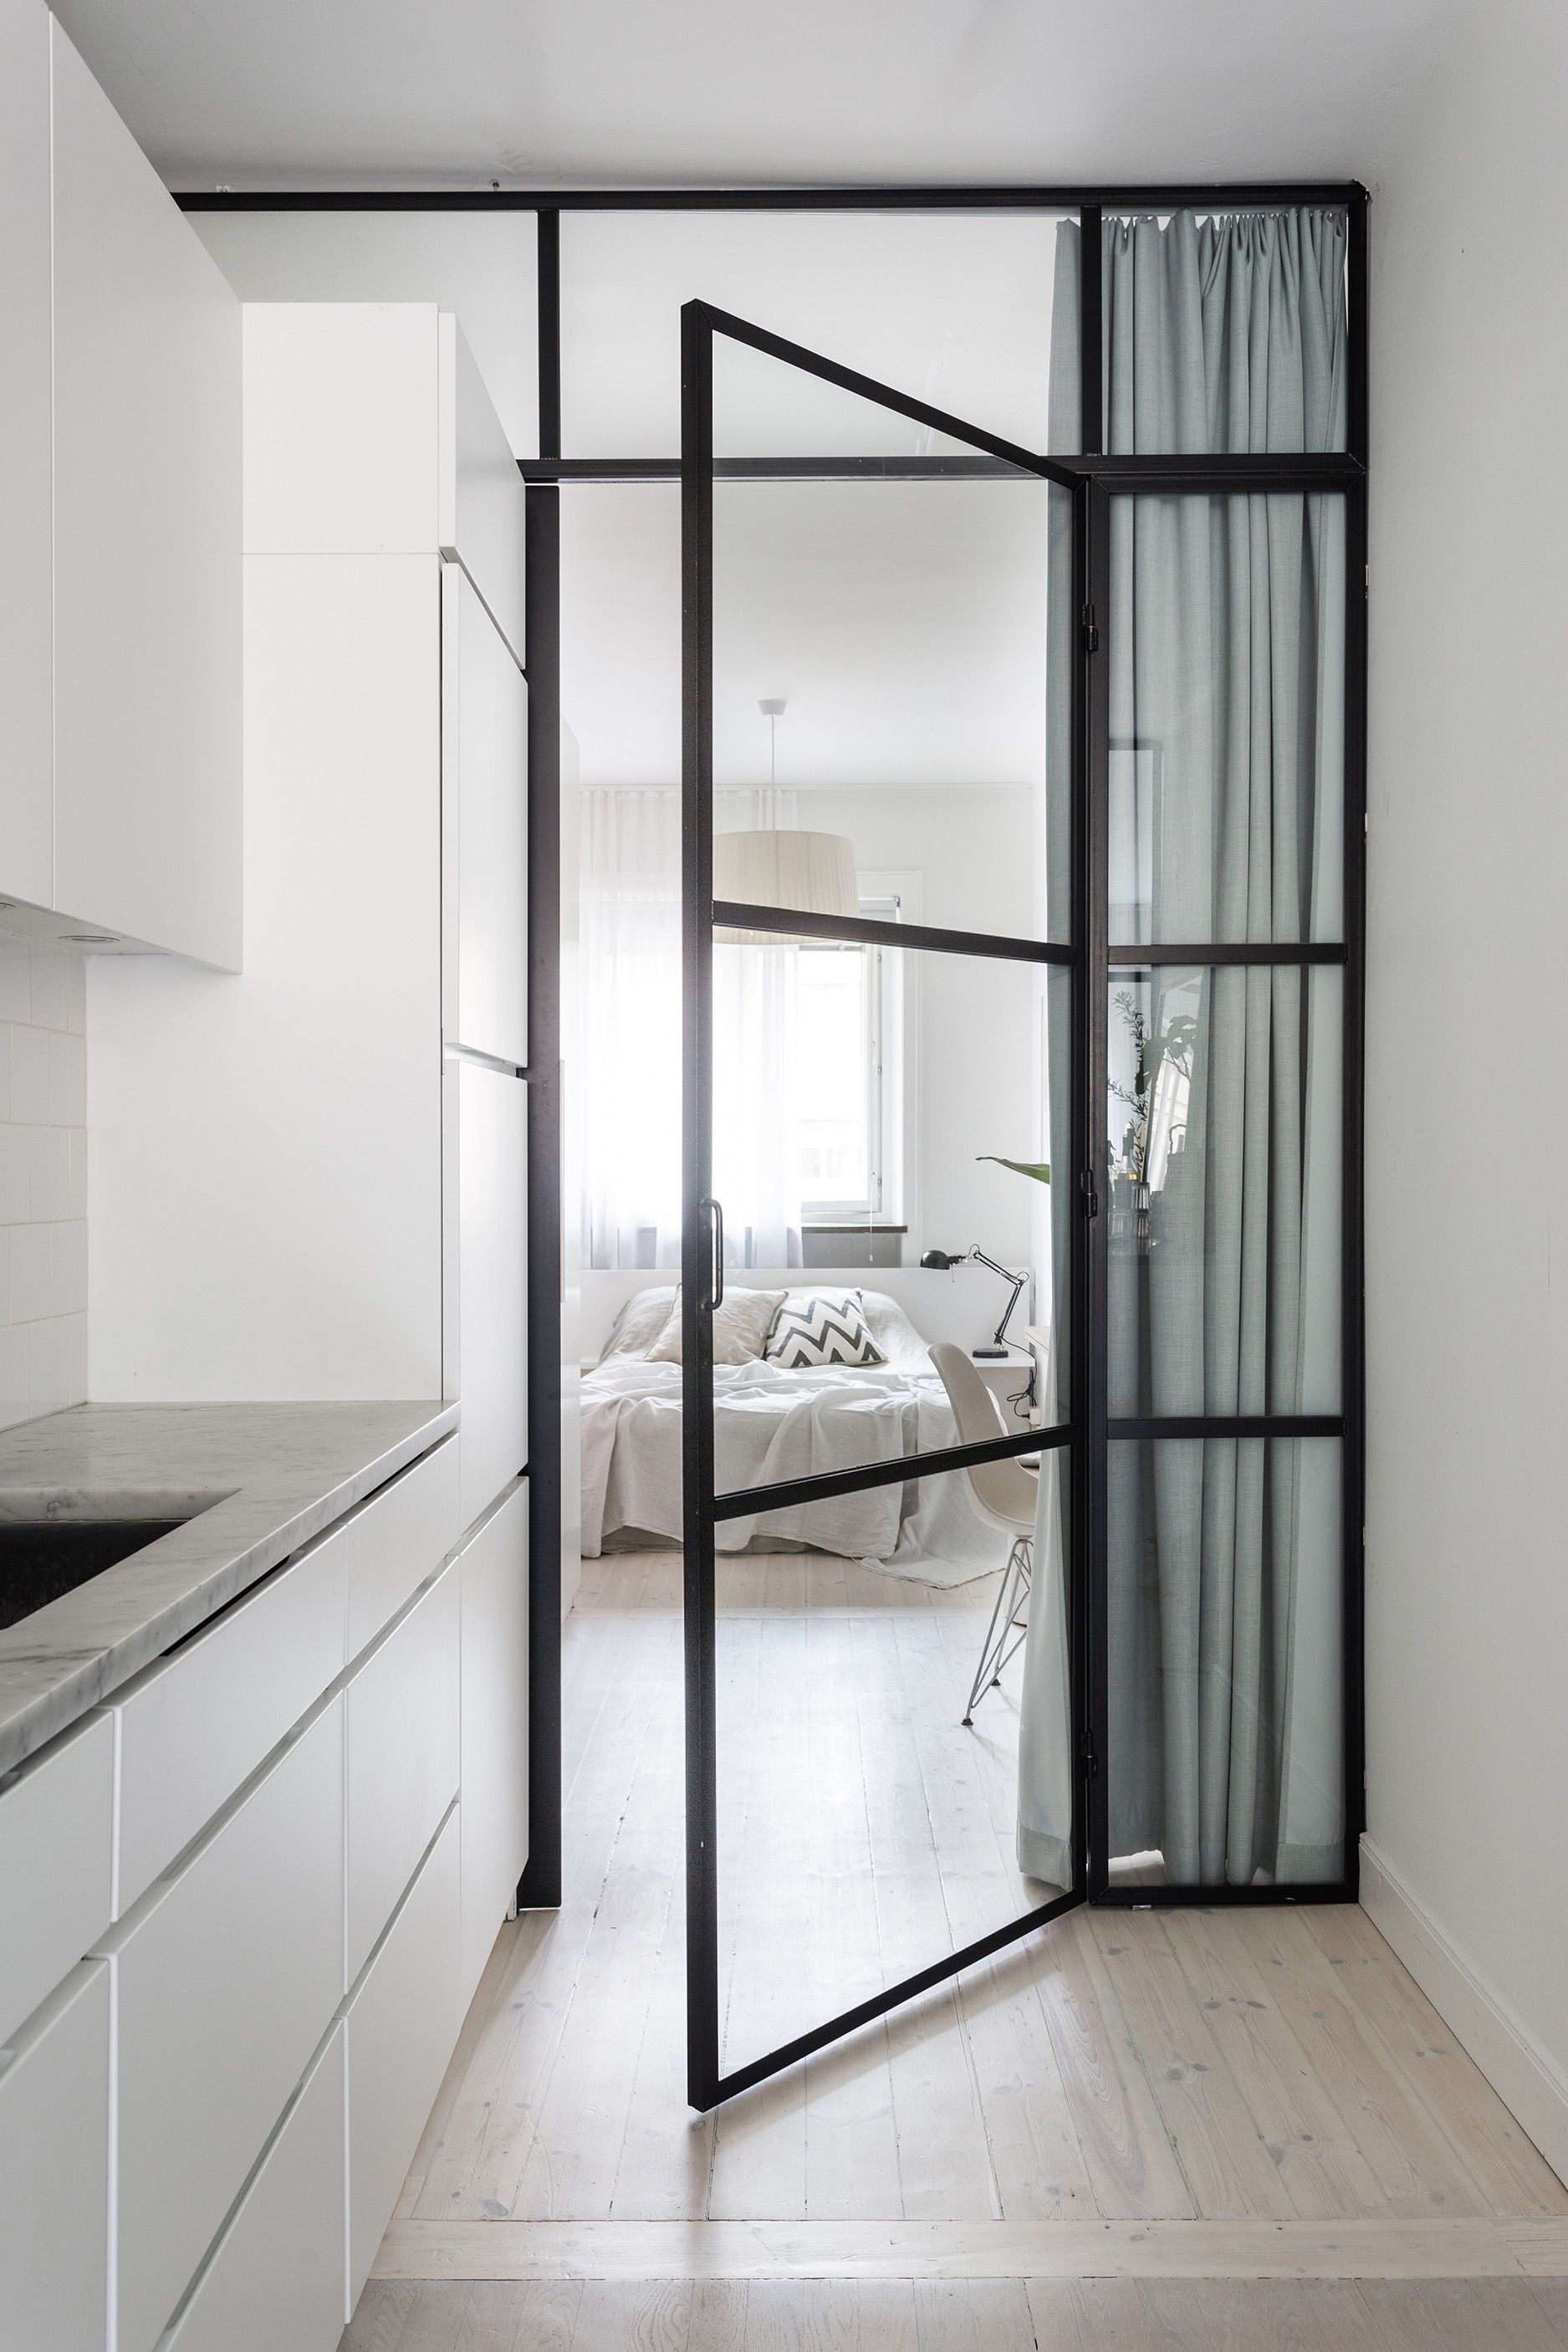 Pin by Andrea Herbst on Wohnideen   Pinterest   Glass partition ...